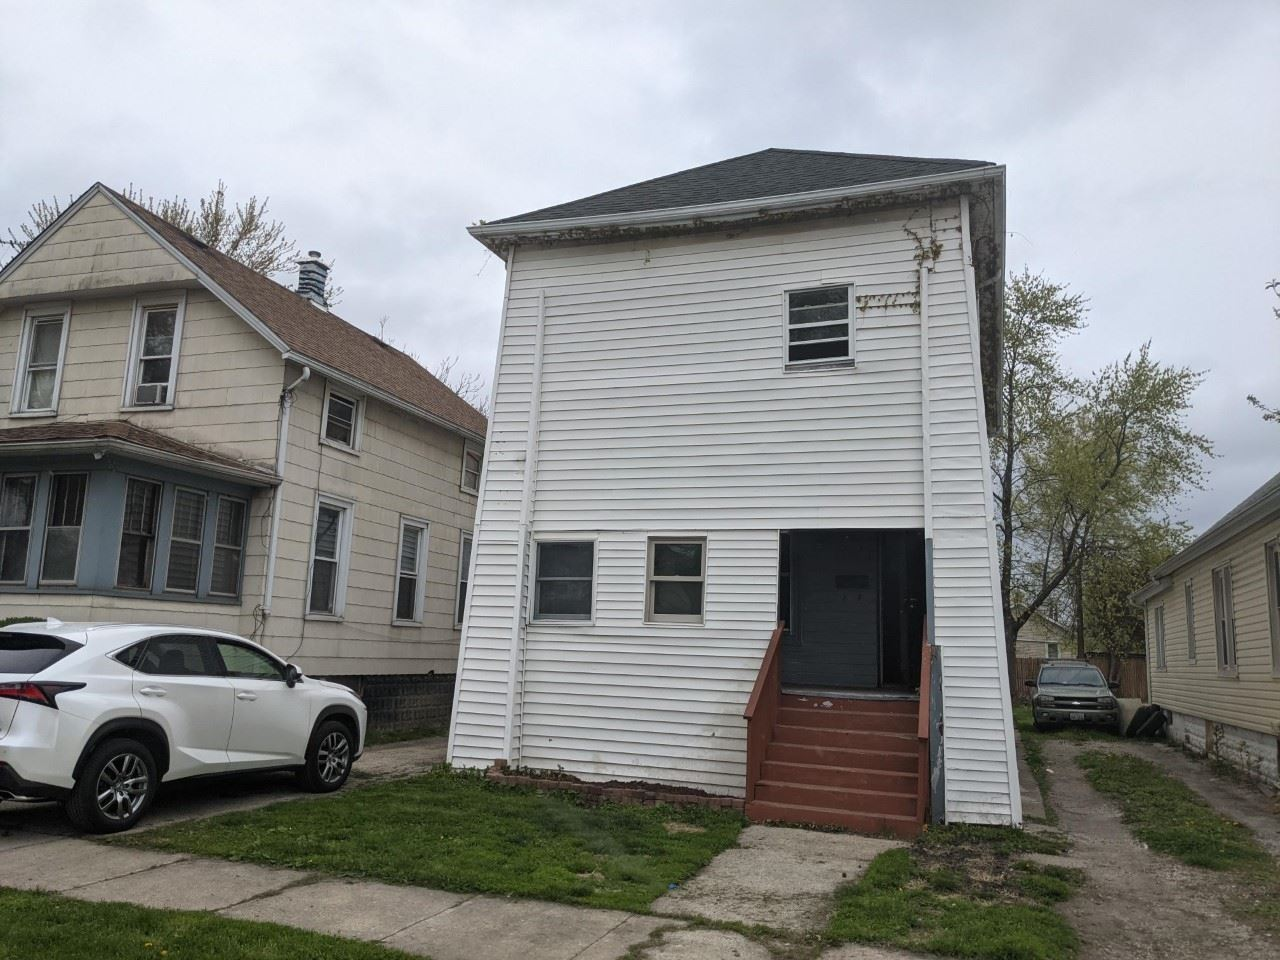 Photo of 109 E Webster Street, Joliet, IL 60432 (MLS # 11058387)